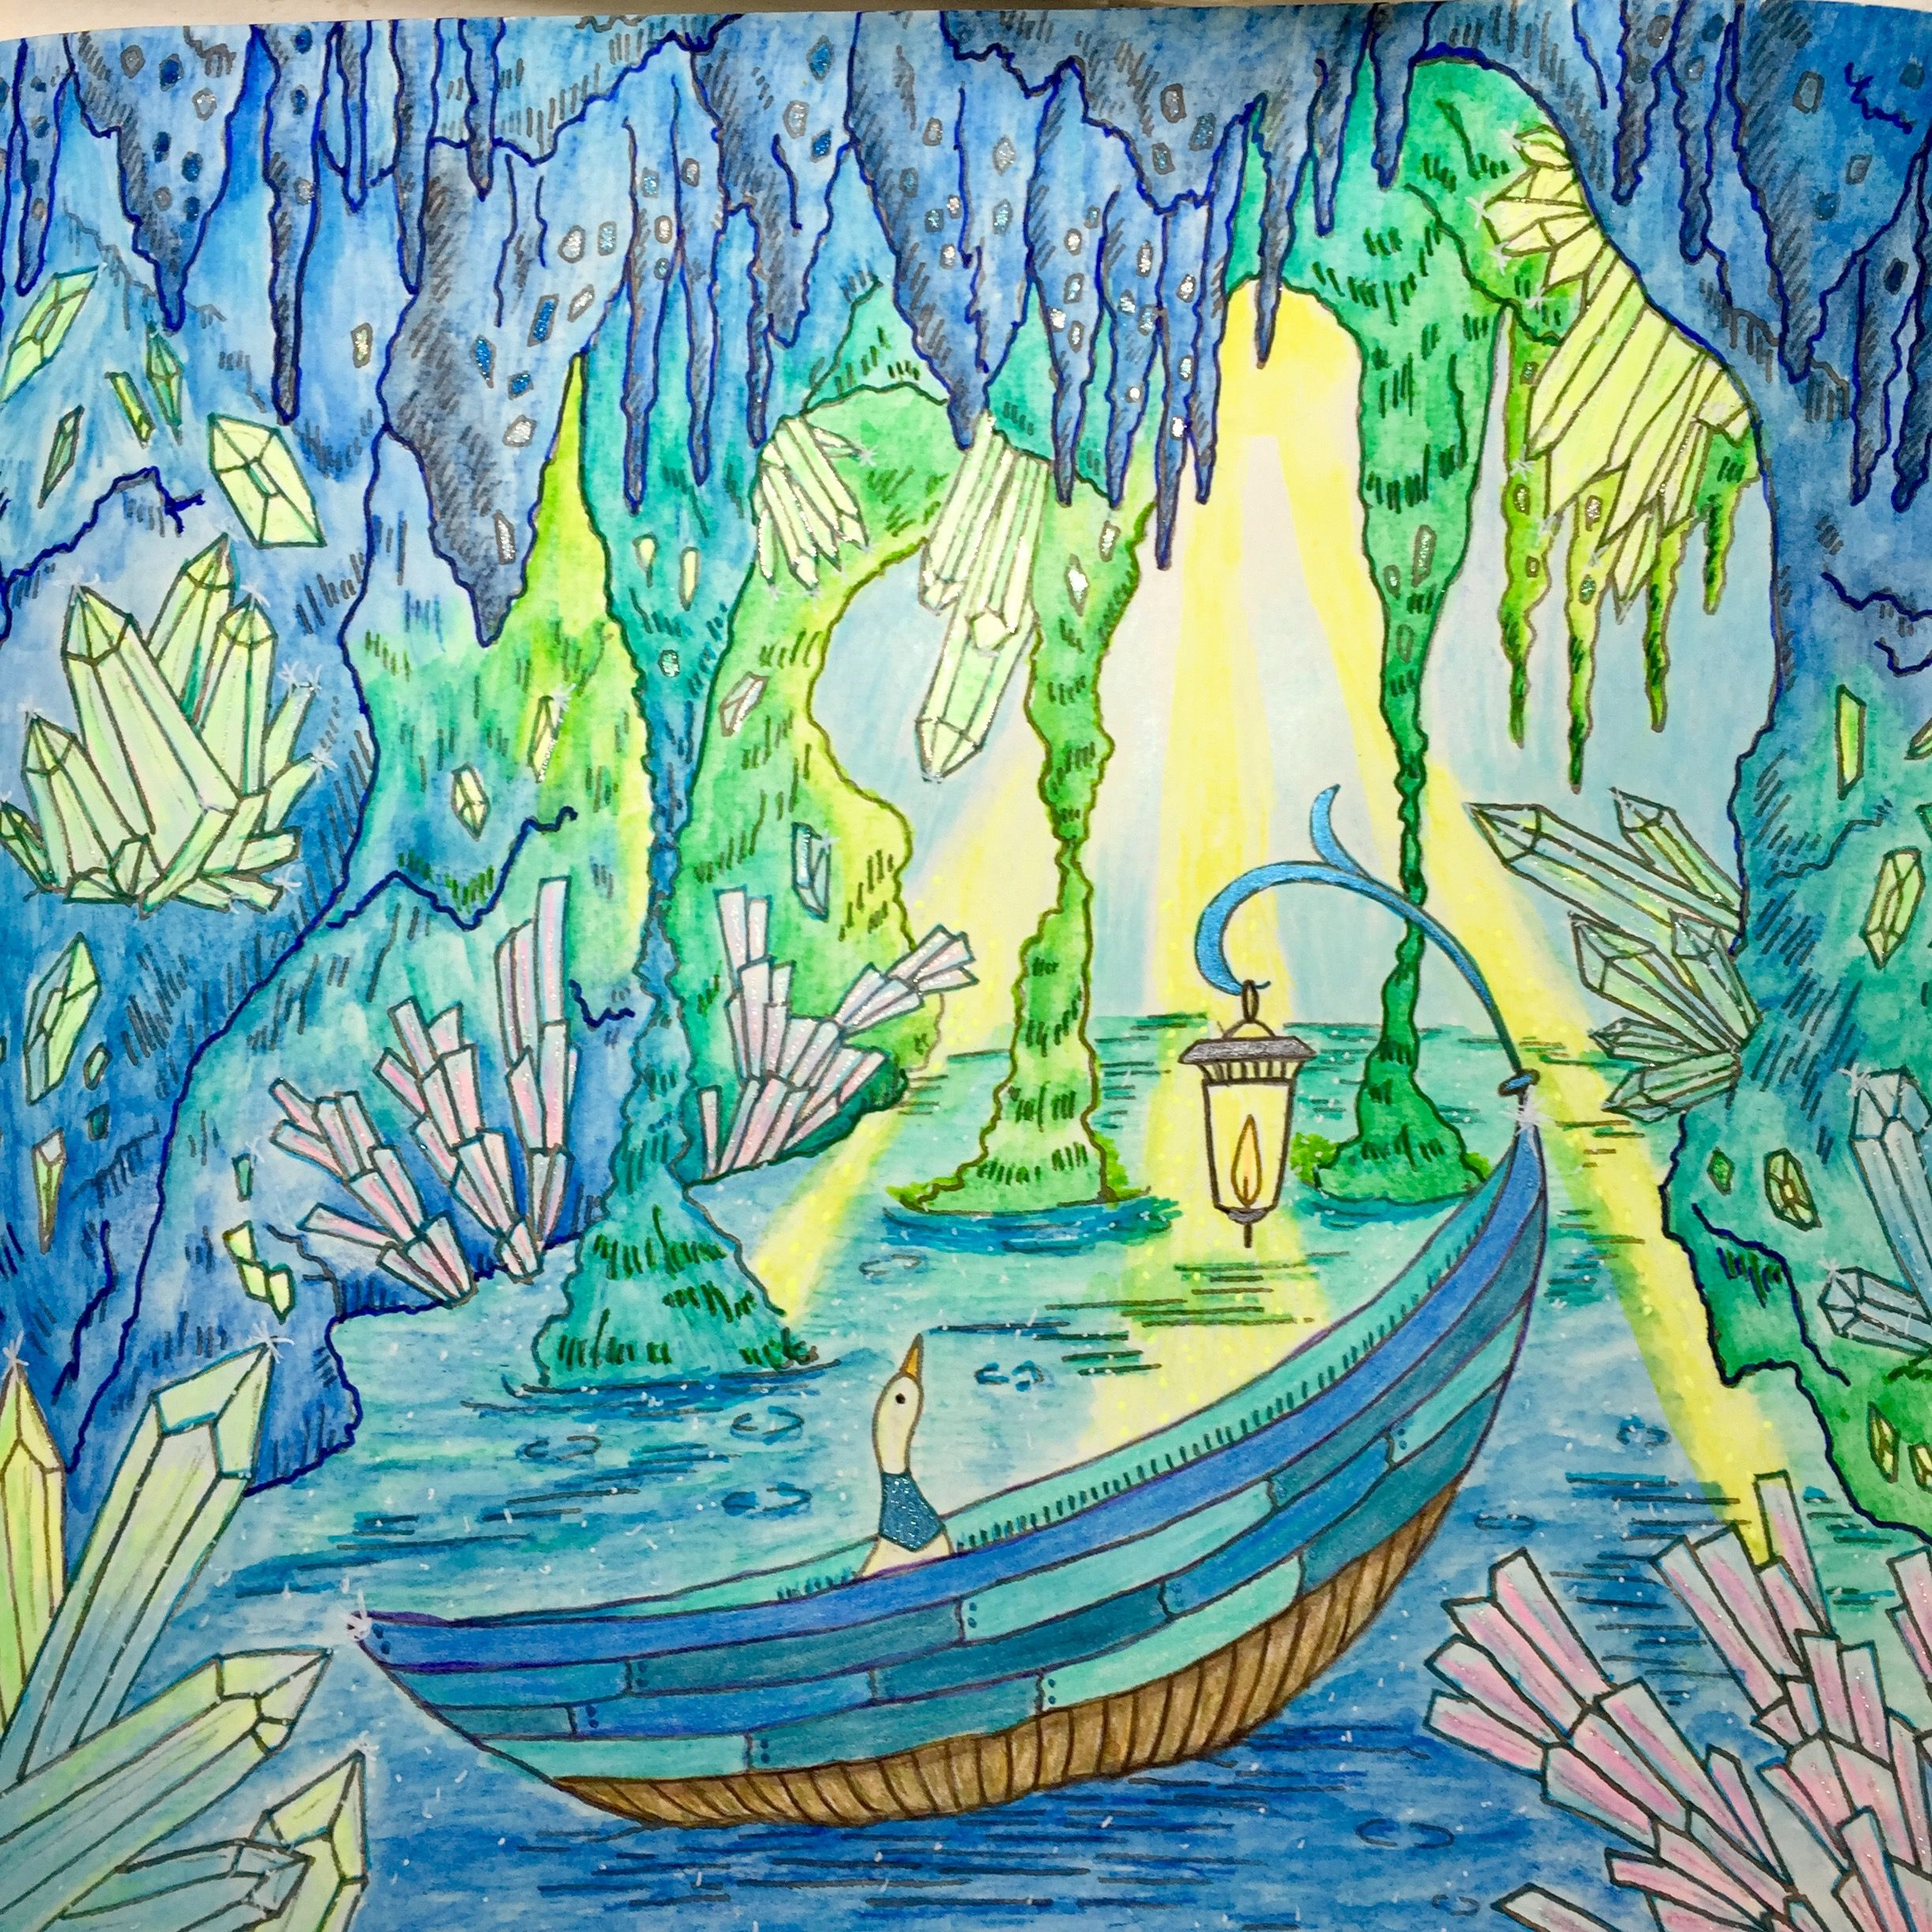 Crystal Cave From Romantic Country 2 Derwent Inktense, Crayola ...